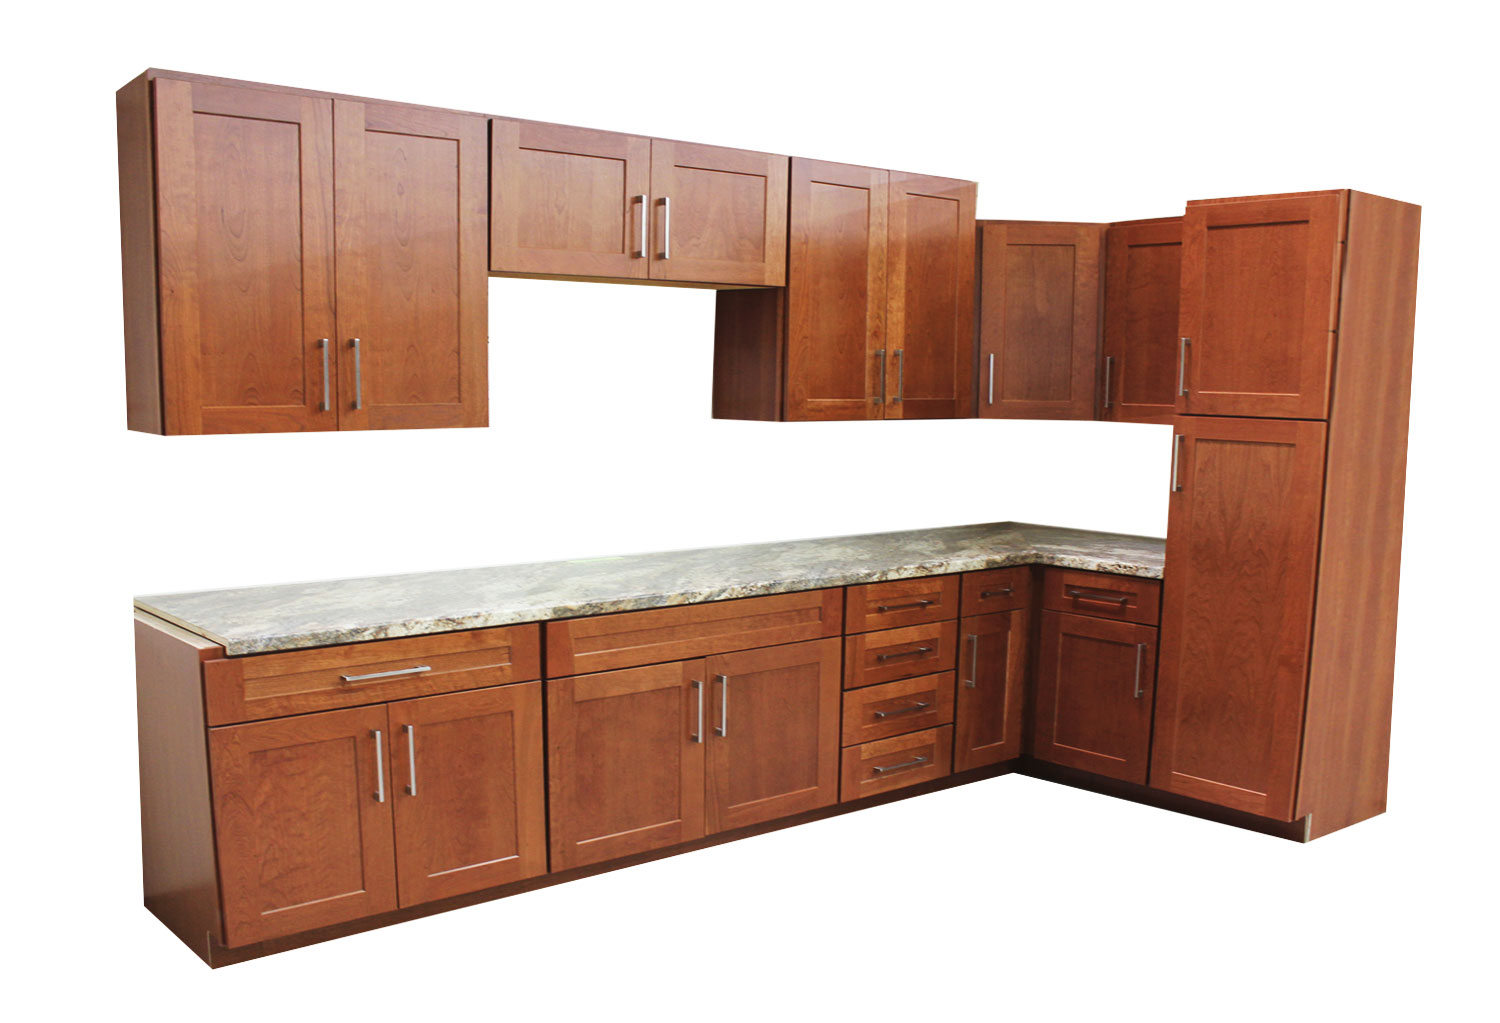 jamestown_shaker_cherry_kitchen_cabinets.jpg